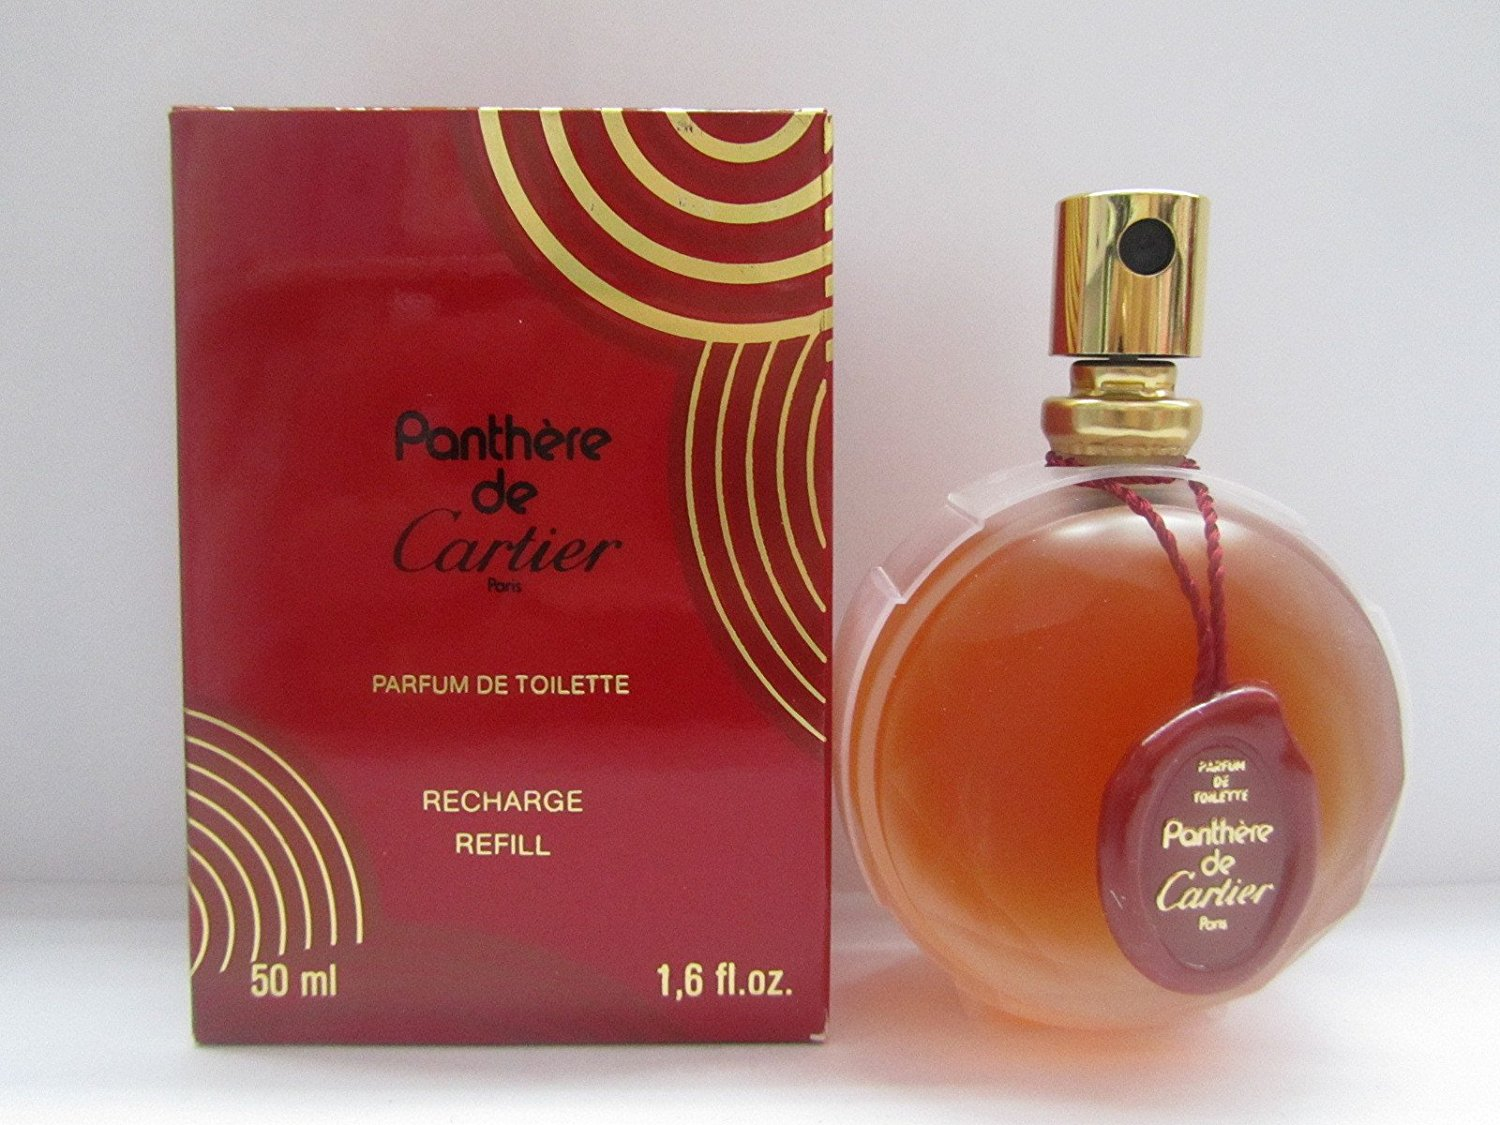 aaa836a565d Get Quotations · Panthere De Cartier by Cartier Women Perfume 1.6 oz Parfum  De Toilette Refill